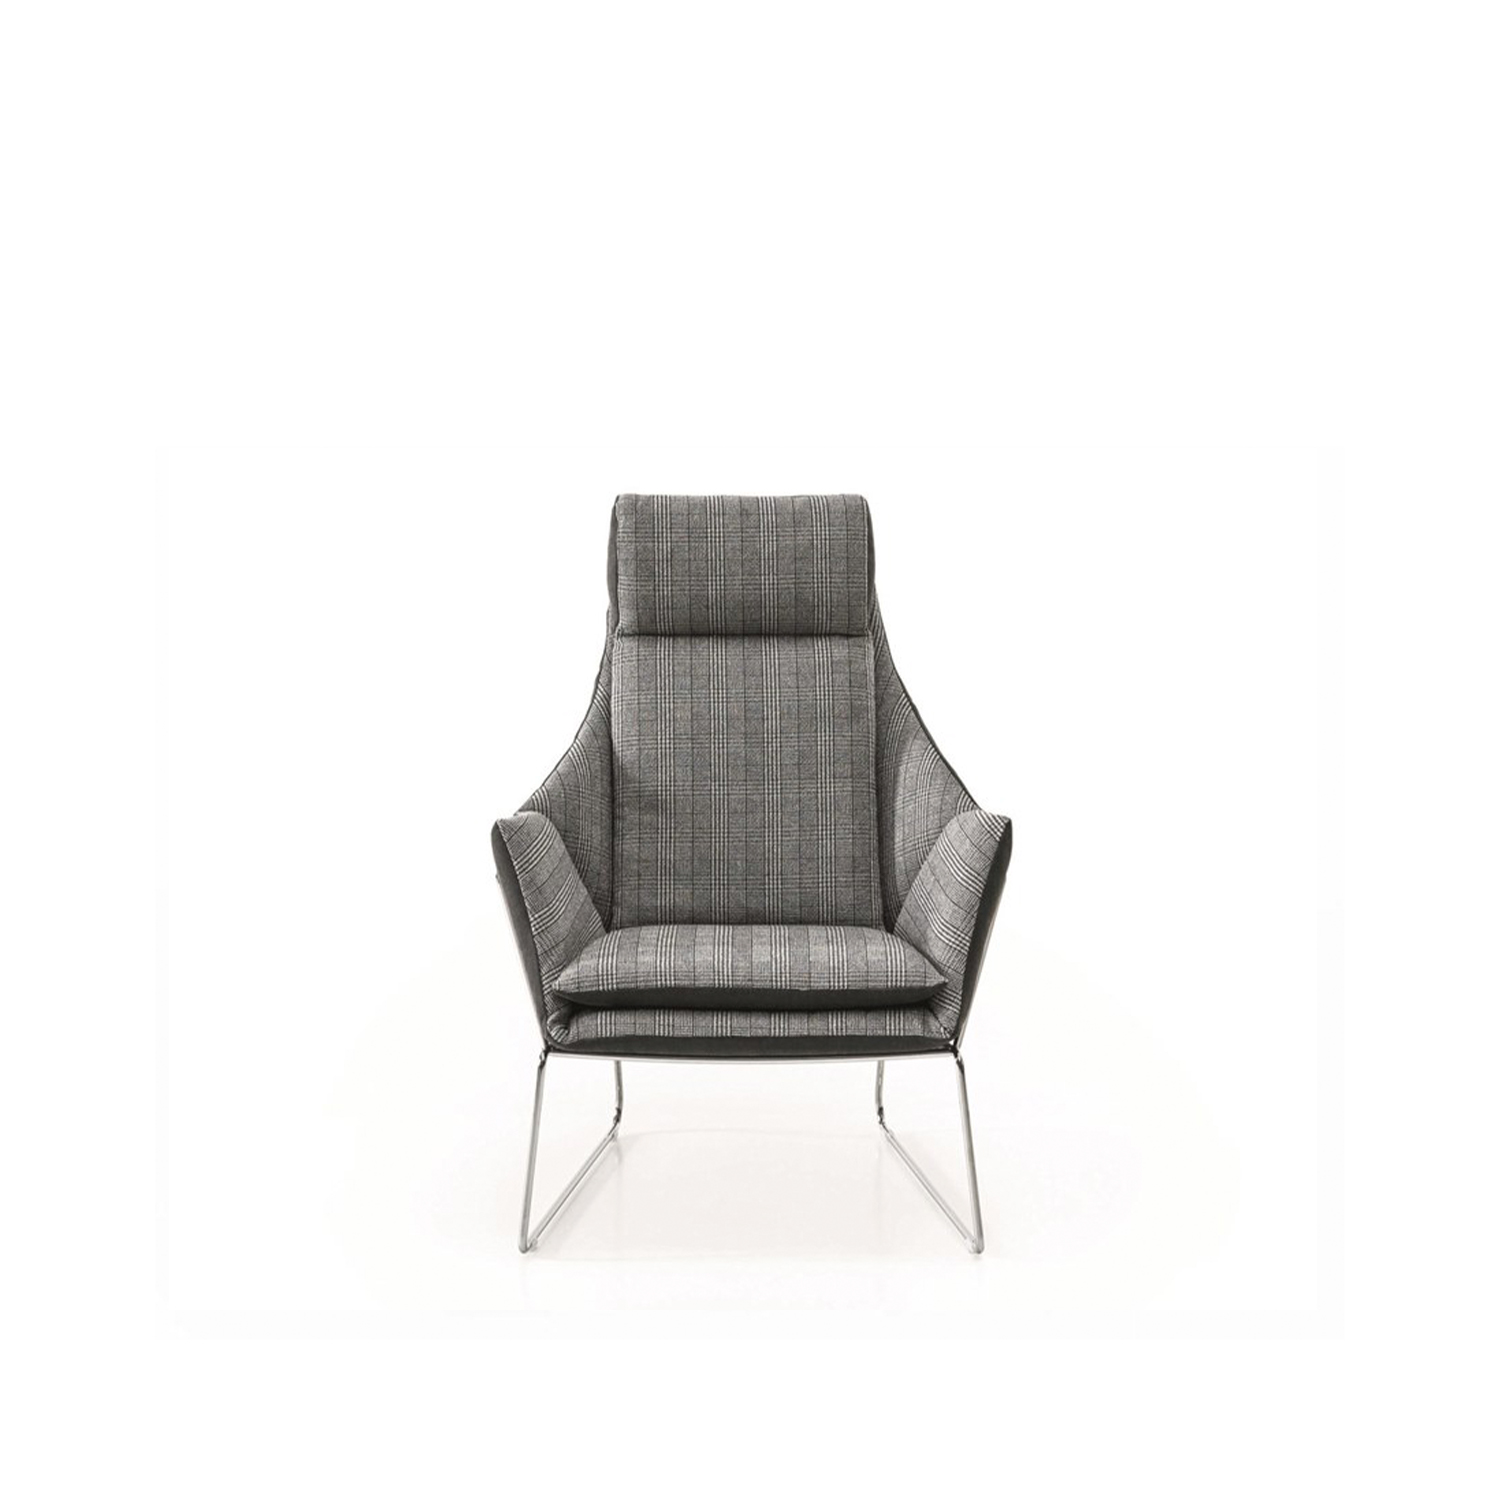 New York Bergère Lounge Armchair - The same frame as the New York armchair boasts the comfortable upholstery of the bergère. The classic function of the armchair for reading or relaxing is ensured by the height of the back, the comfortable headrest and the elegant pouf. An unbroken link with tradition interpreted in a contemporary style with a sophisticated lightness. Fully removable covers.  There is a matching pouf that can be purchased called the New York Bergere Pouf.   Additional removable cover is available, please enquire for prices.  Materials Structure in 12 mm wire drawn. The seat is in perforated sheet metal. Chrome or painted finish. Inner pad and seat cuchion are in 50IP polyurethane foam; back and headrest cuchions are paded with 21IM and 25IM polyurethane foam. All is covered with white cotton fabric on 380gr/sqm polyester fiber. | Matter of Stuff